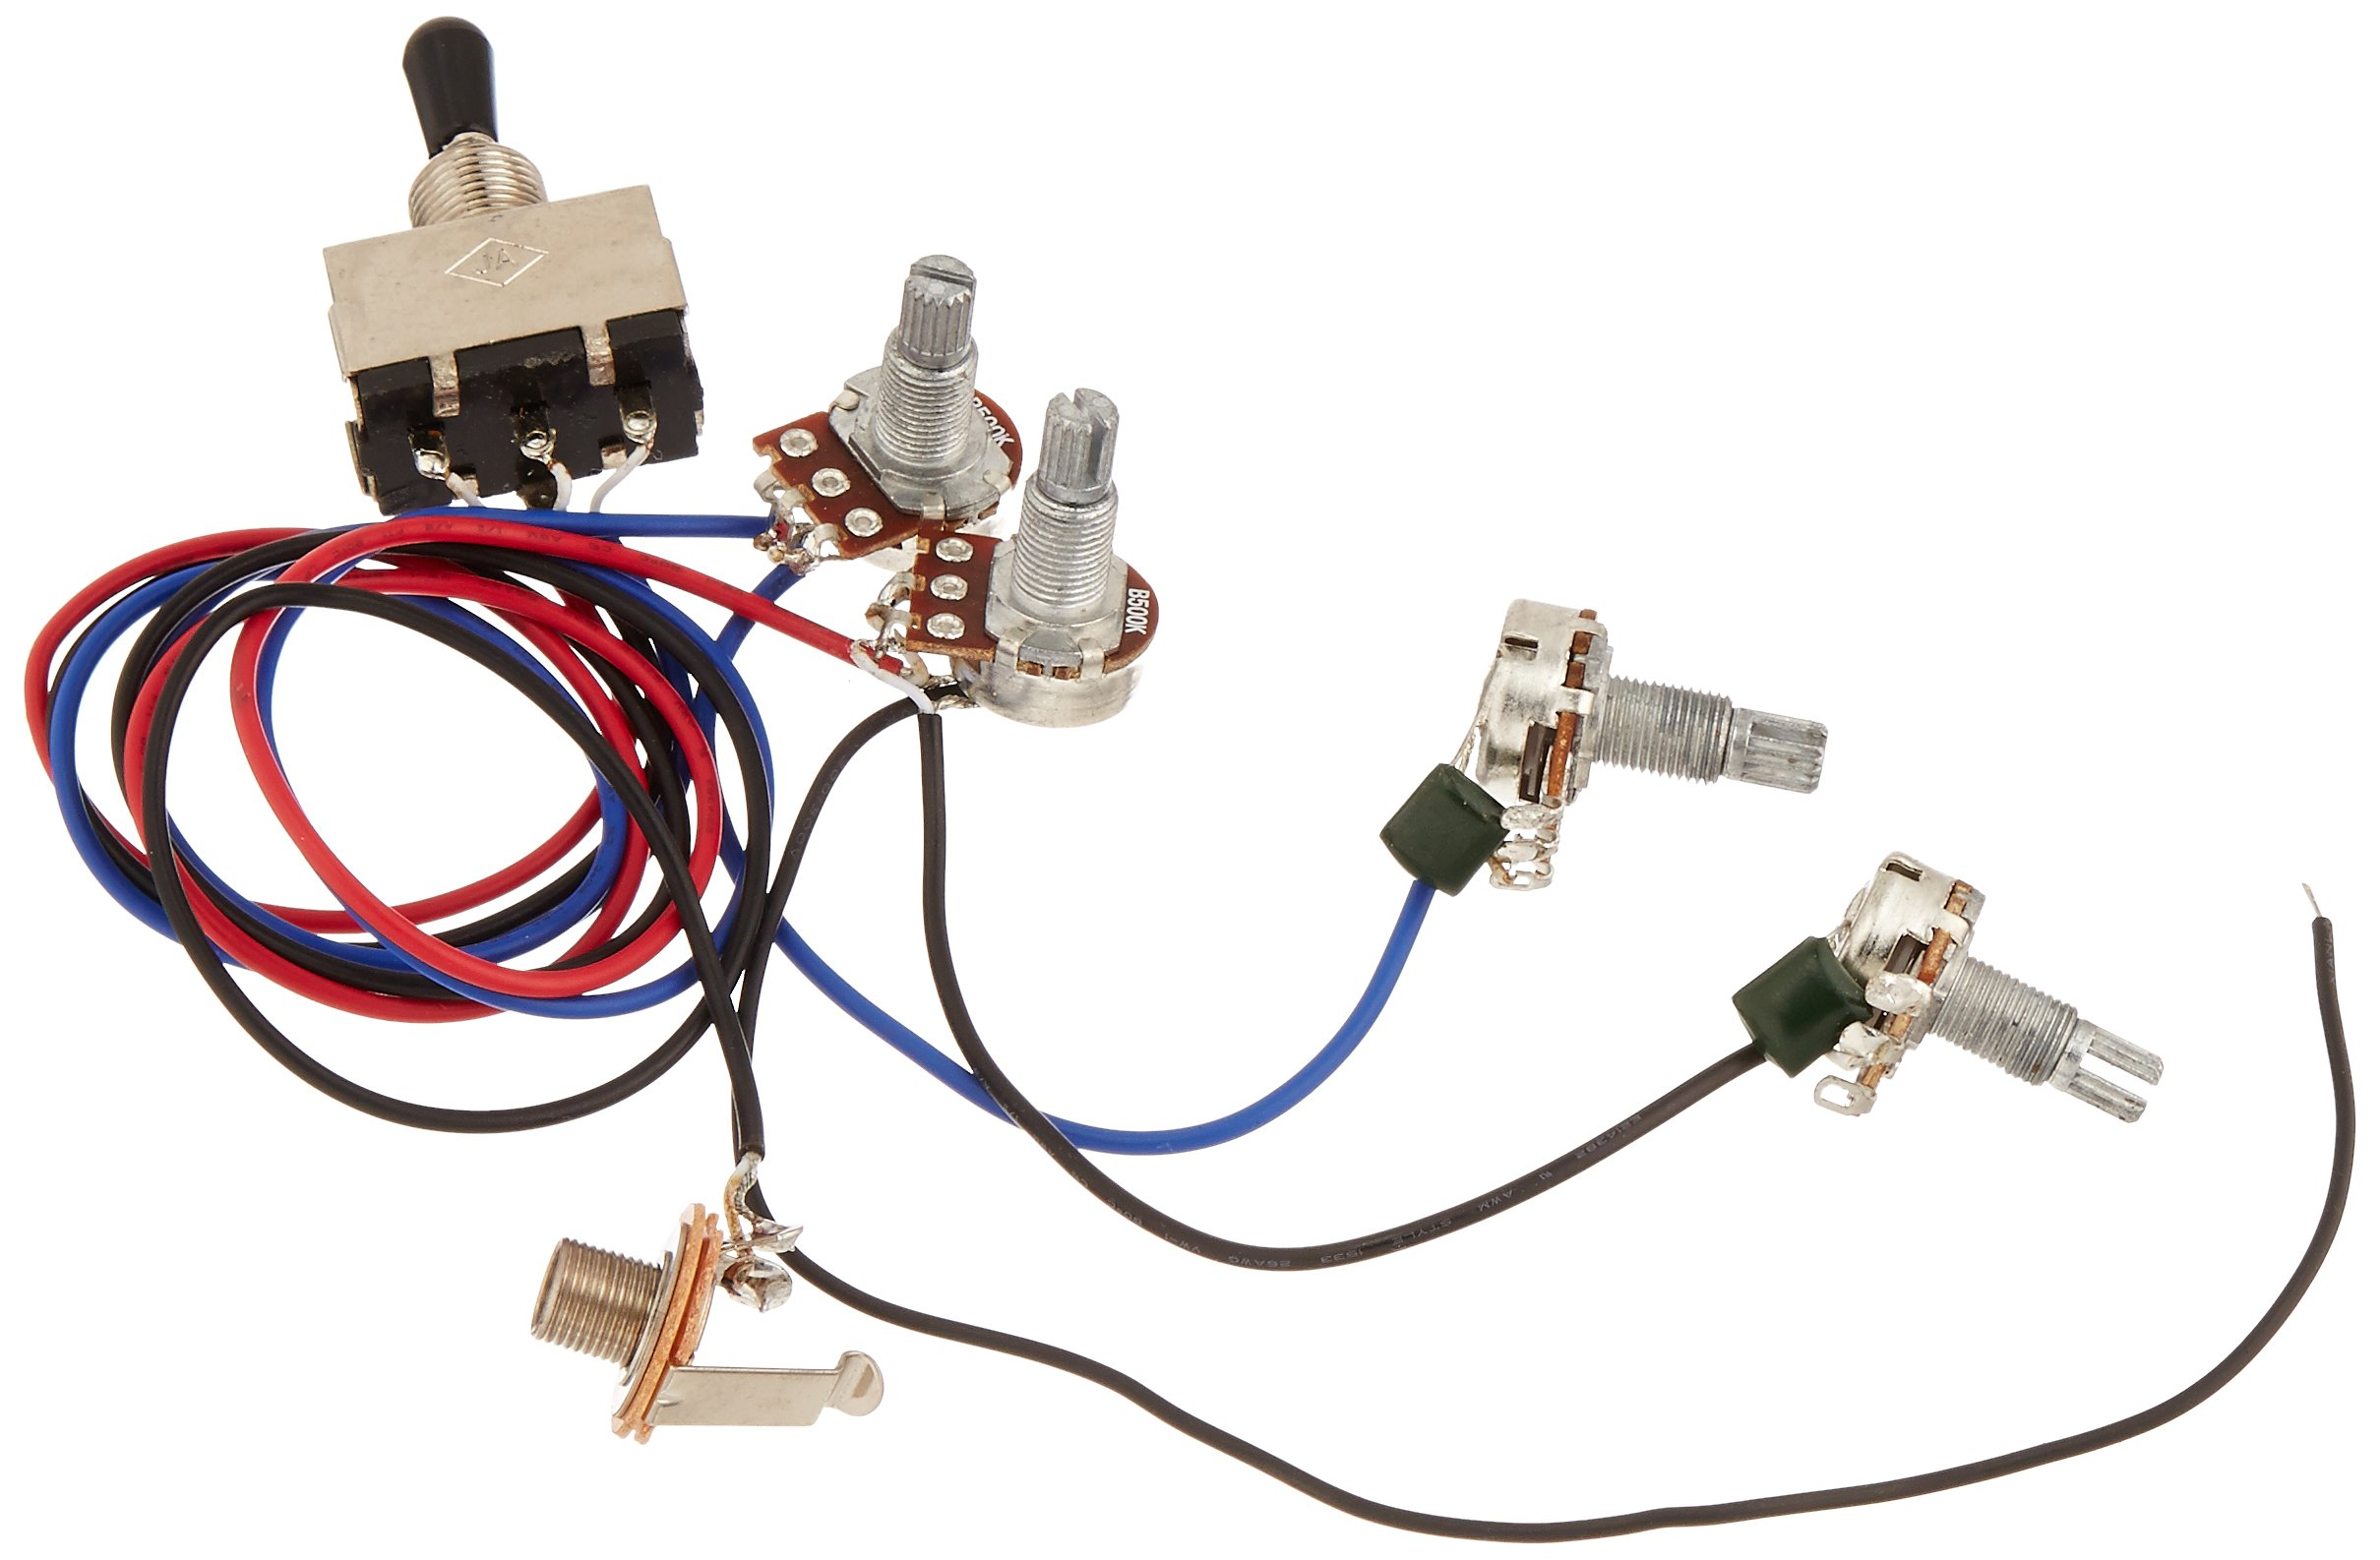 Cheap Gibson Guitar Wiring Find Deals On Line Jack Cable Get Quotations Kmise Harness Prewired 2v2t 3way Toggle Switch 500k Pots For Replacement